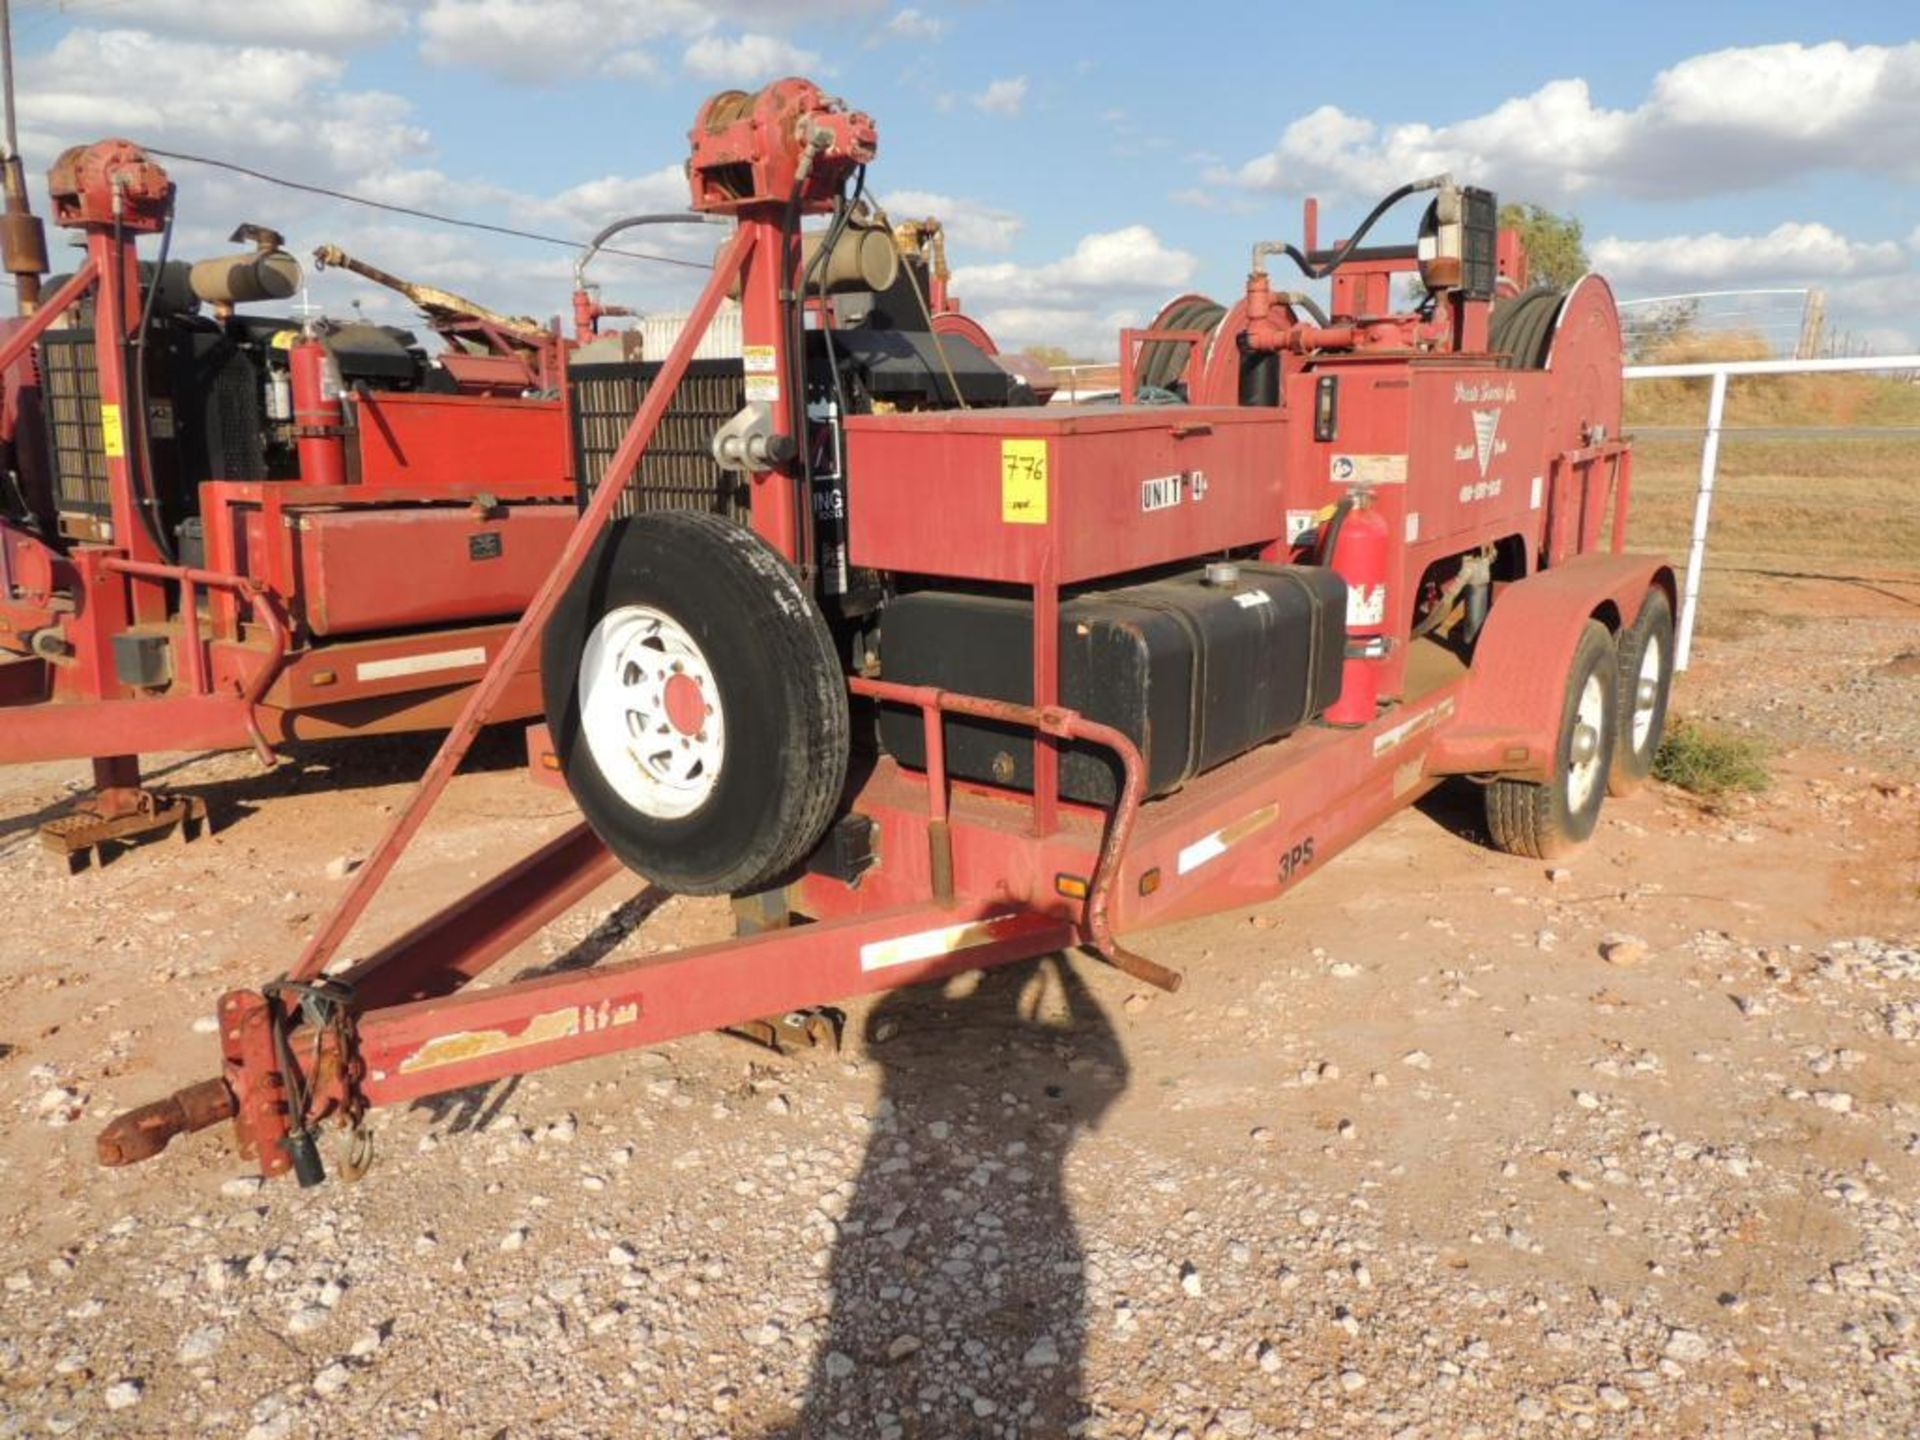 Power Swivel Trailer 2012 Springer Trailer 6 Ft. x 14 Ft. T/A, w/ King Oil Tools 3PS Rotary Drive